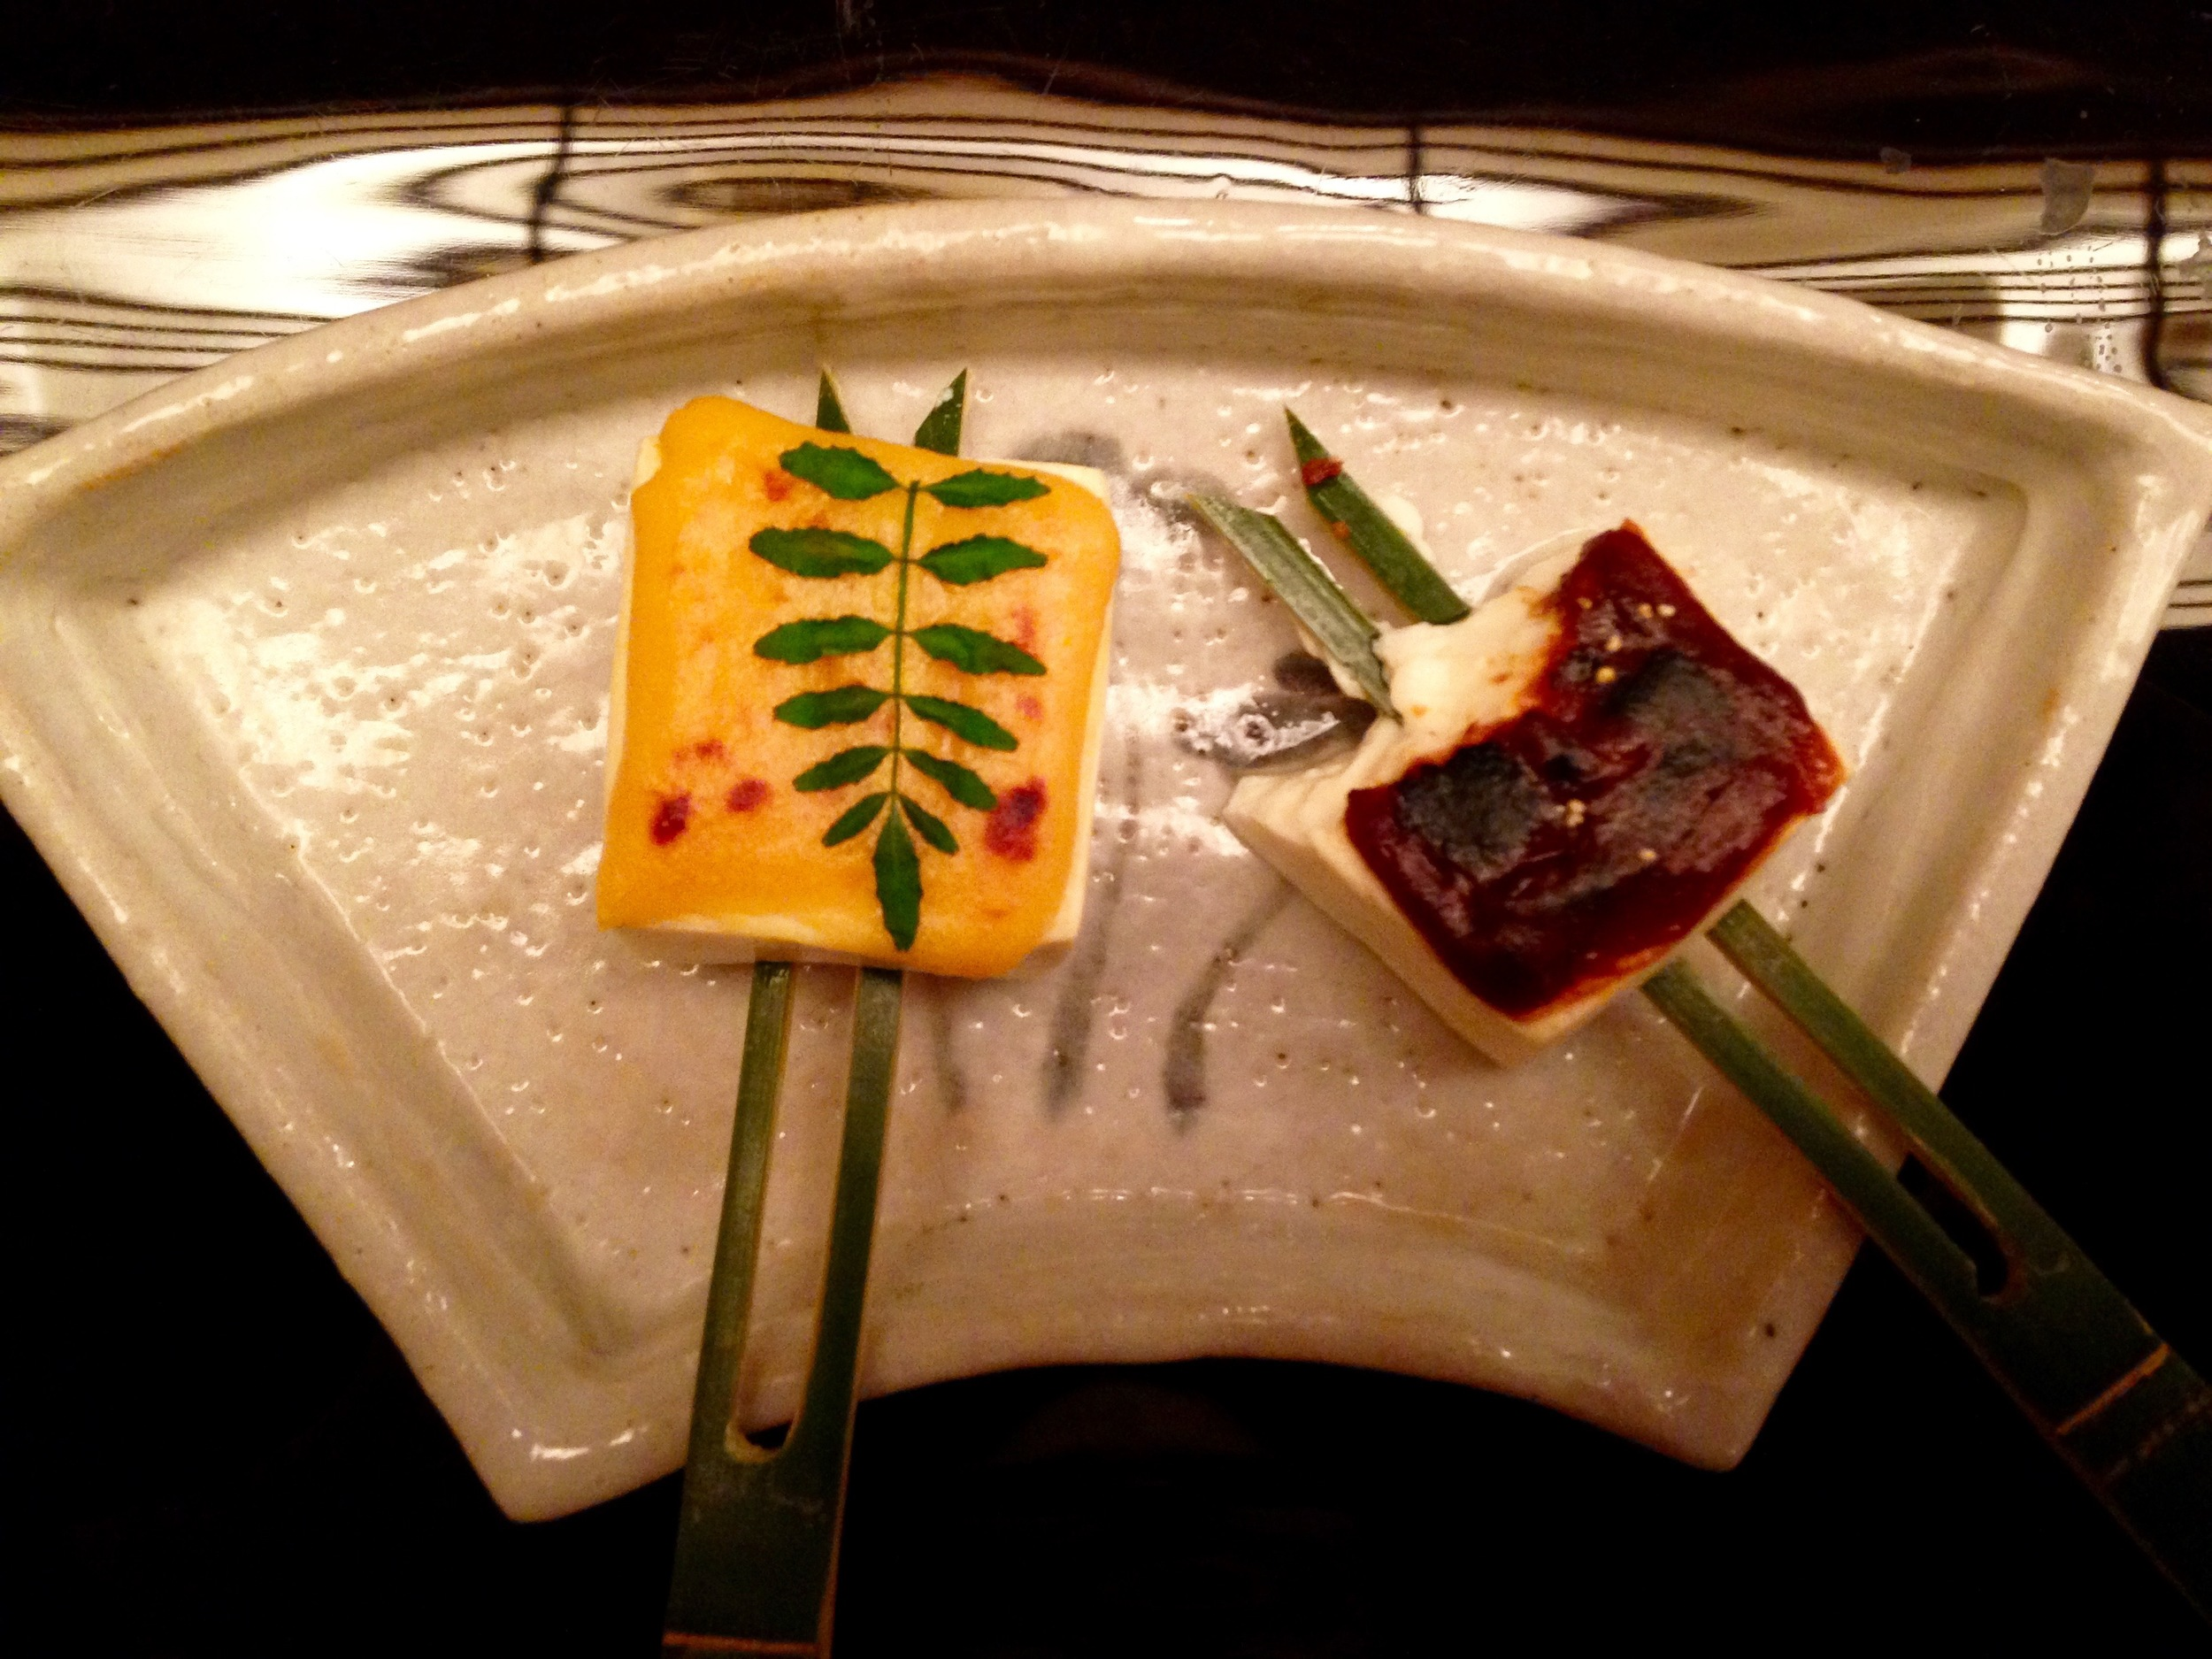 Oshinogi Course: Coal-roasted tofu with red and white miso glaze. And a young pepper tree leaf, a tongue-tingling delight!